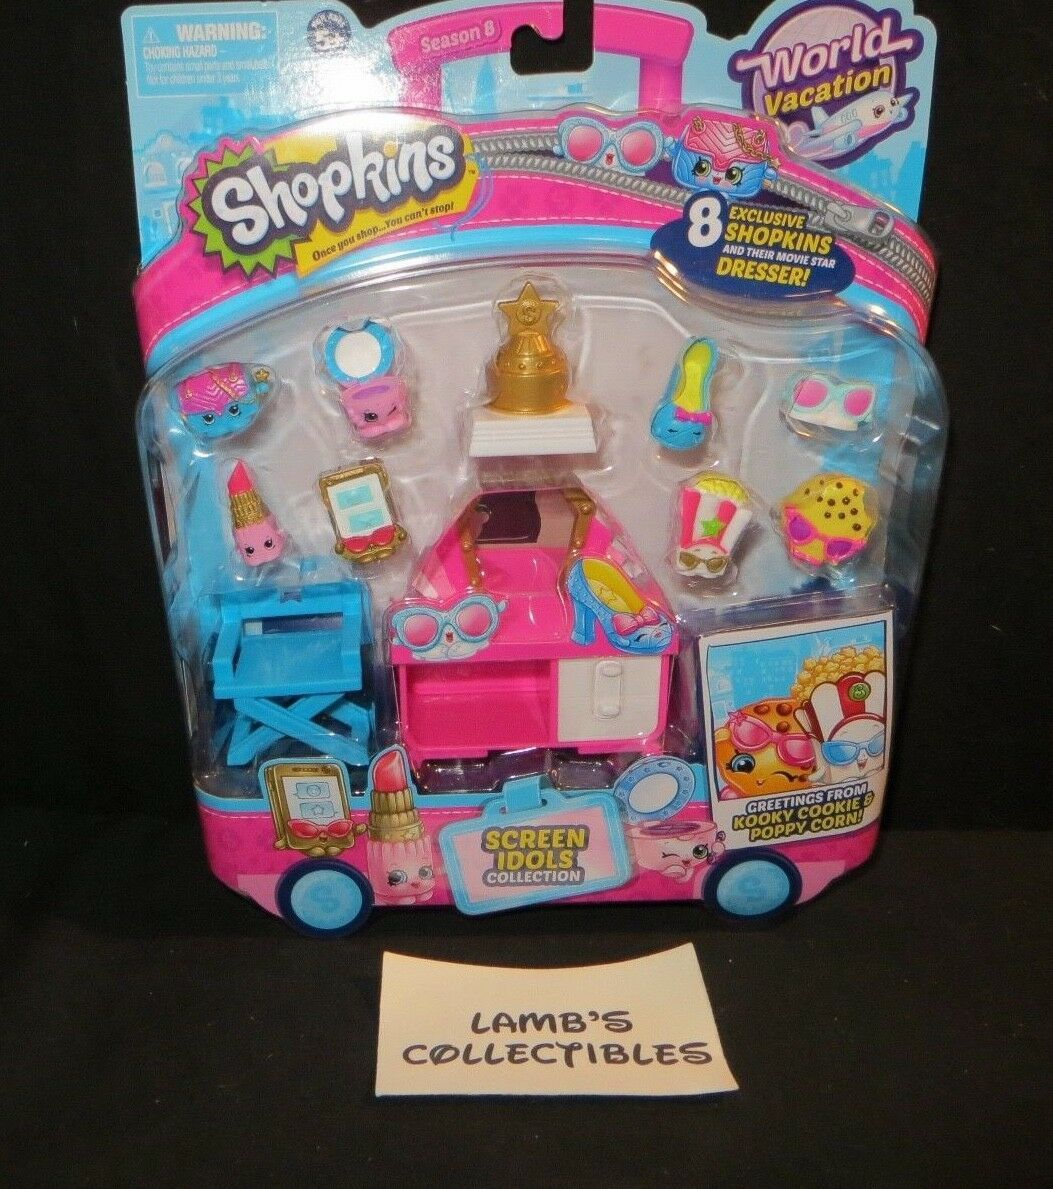 Primary image for Shopkins World Vacation 8 pack Screen Idols collection action figure play toys